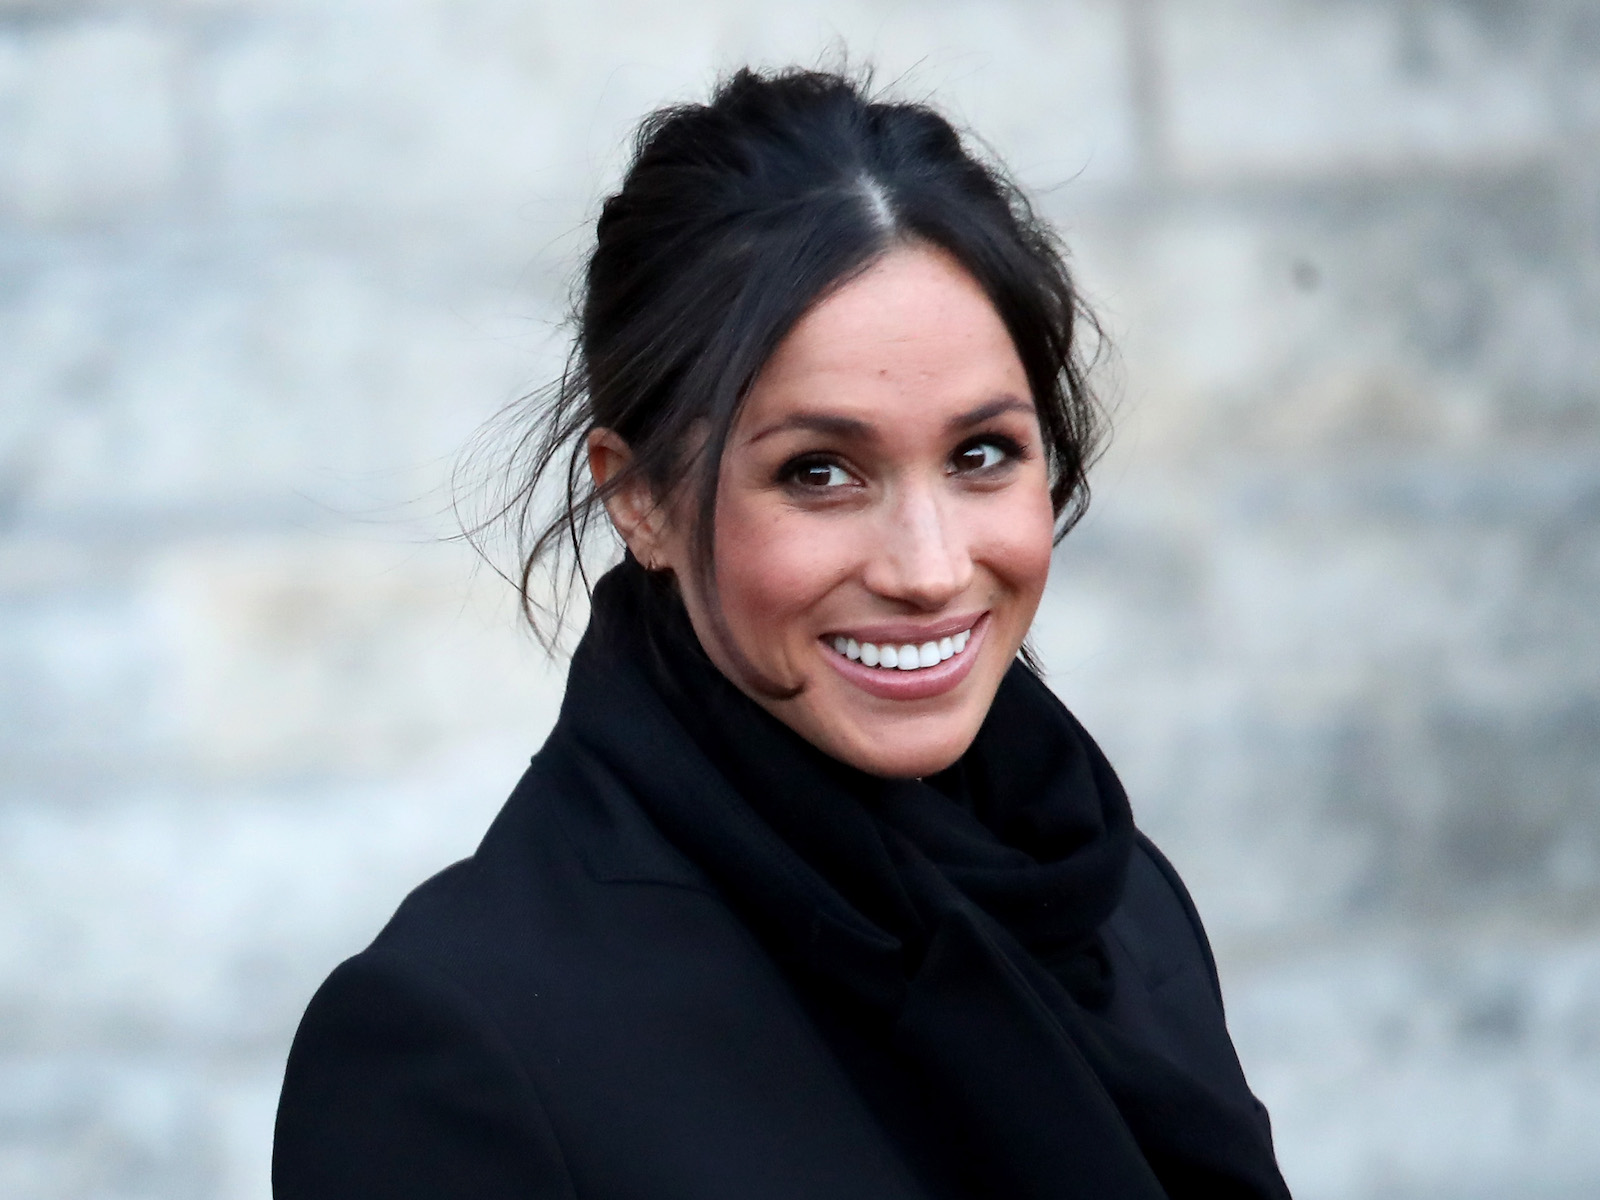 Meghan Markle Had to Practice Drinking Tea Properly Before Meeting the Queen